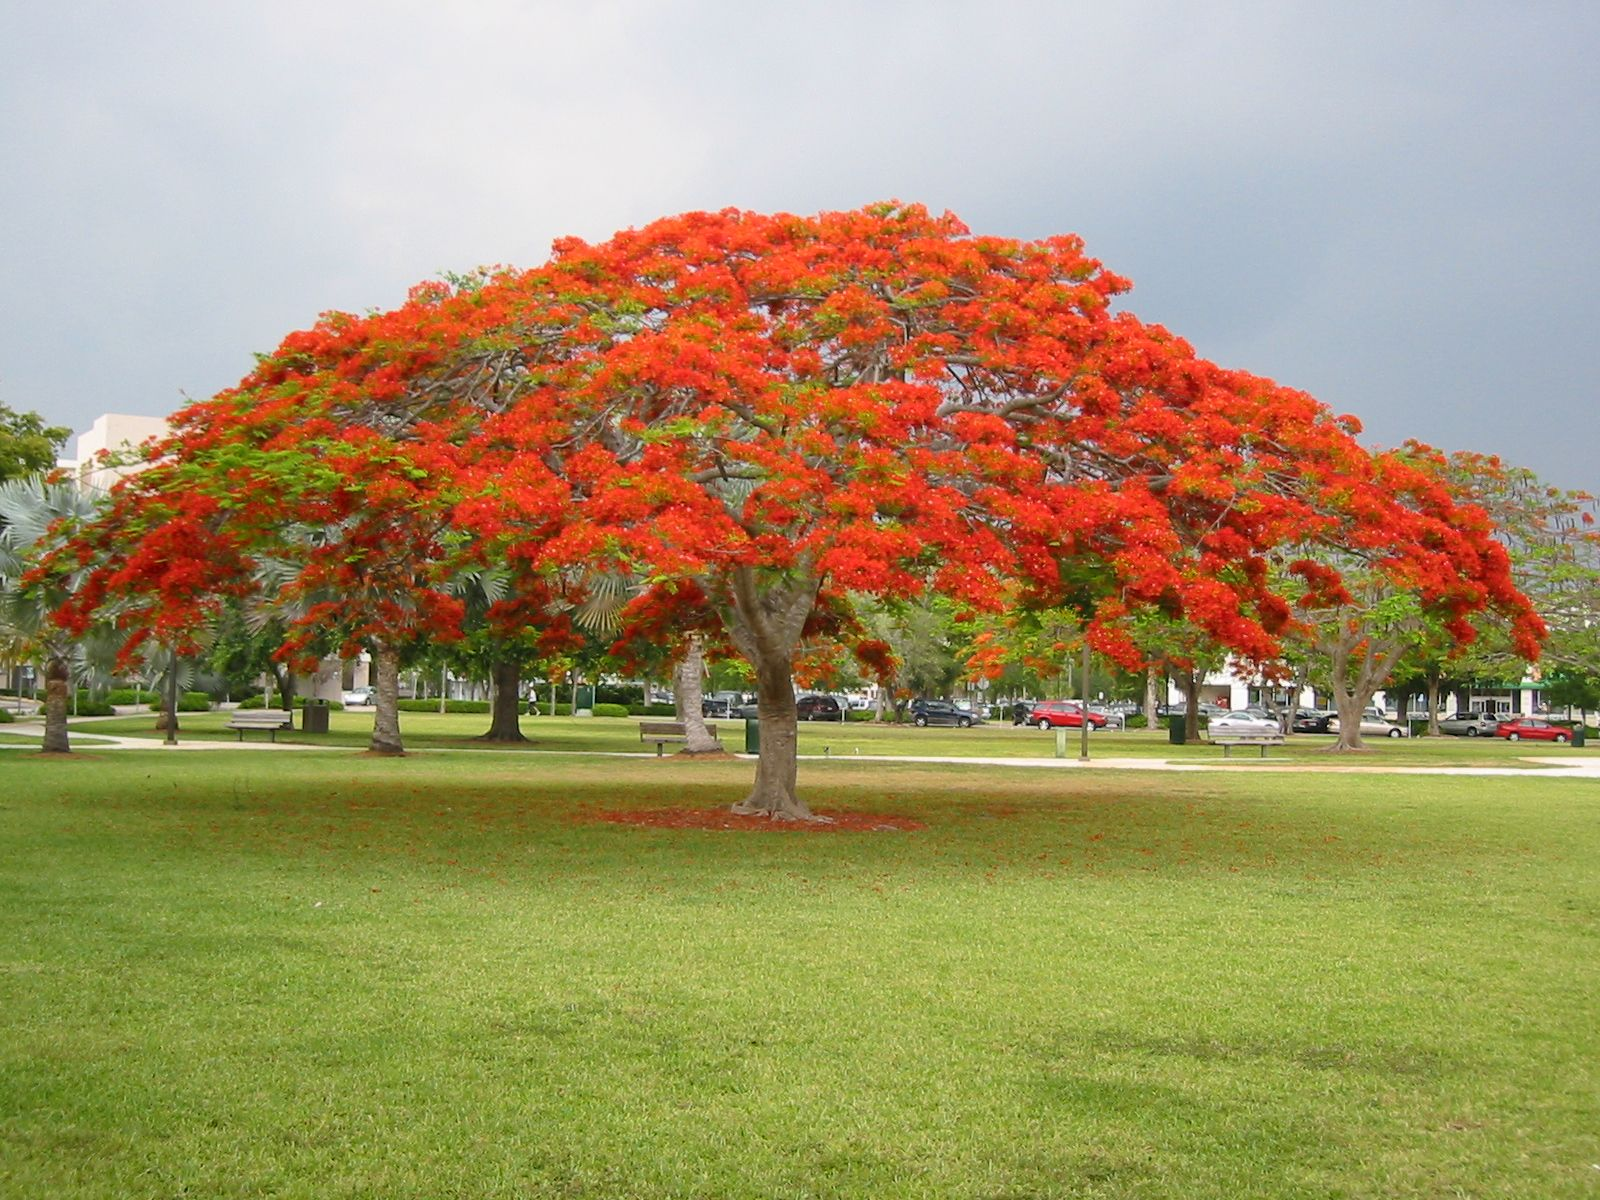 Piantare Alberi Di Paulonia royal poinciana or flamboyant tree - delonix regia | piante